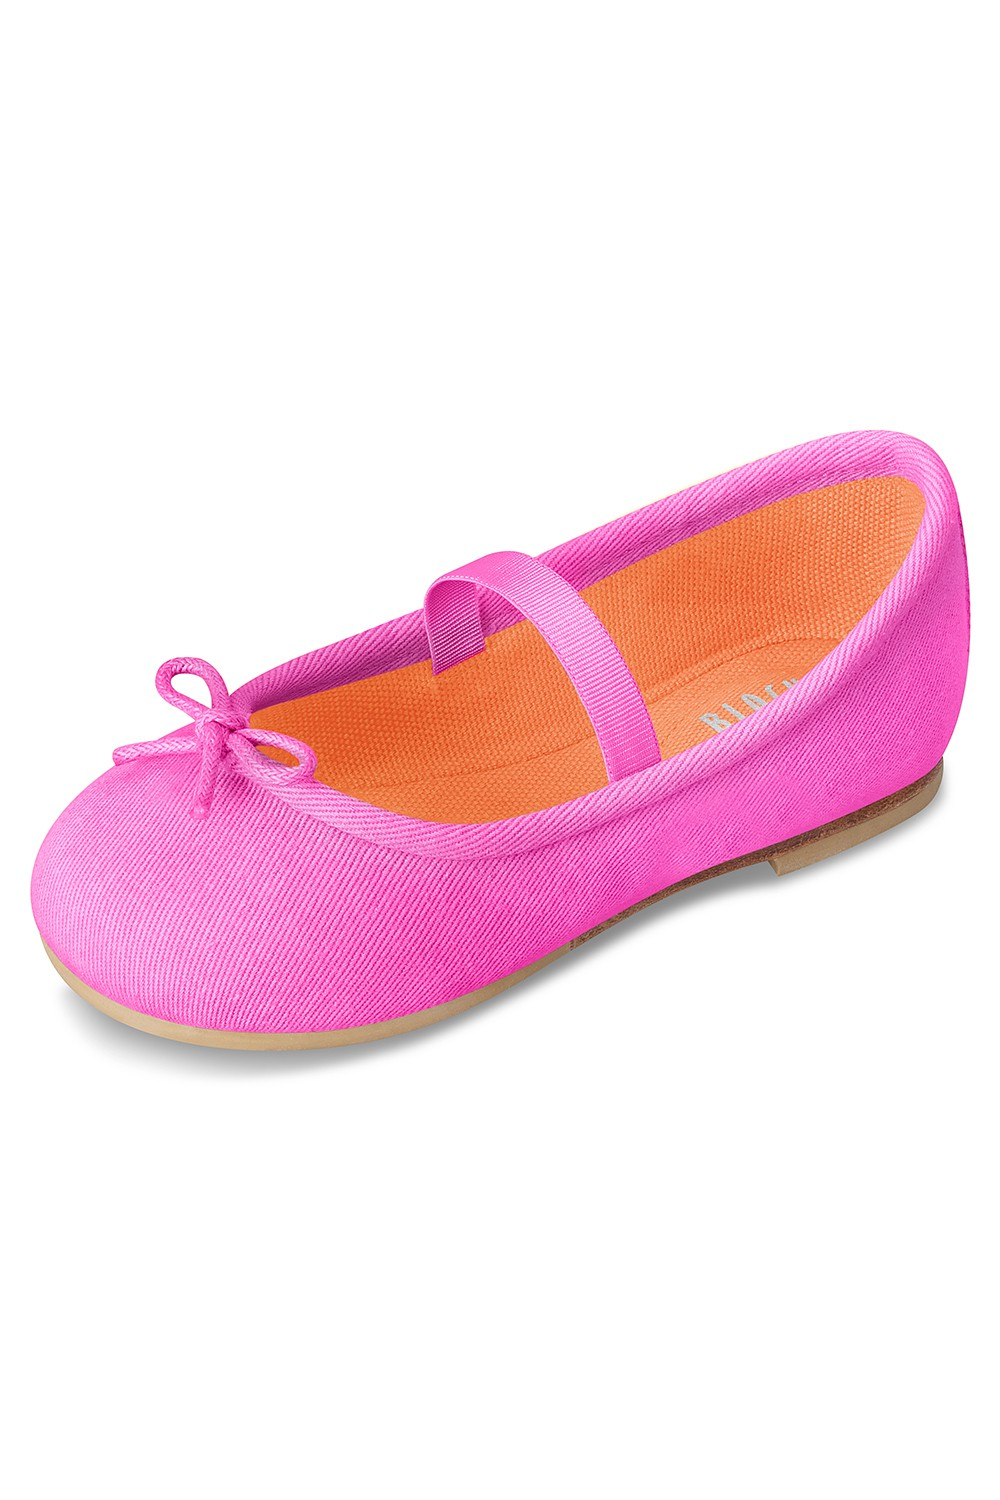 Toddler Melodie Toddlers Fashion Shoes